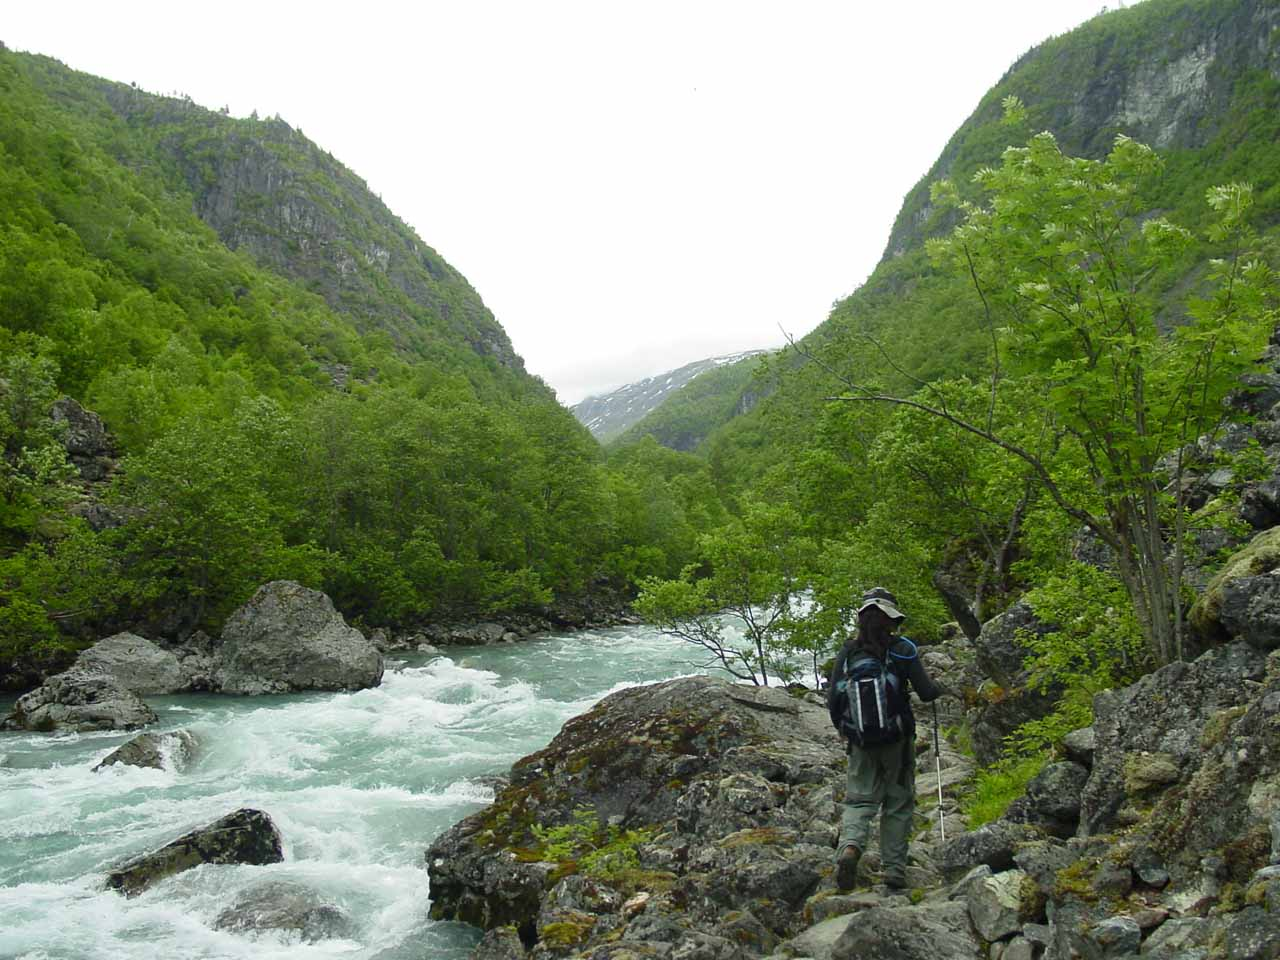 Julie walking awkwardly along the primitive trail beside the river